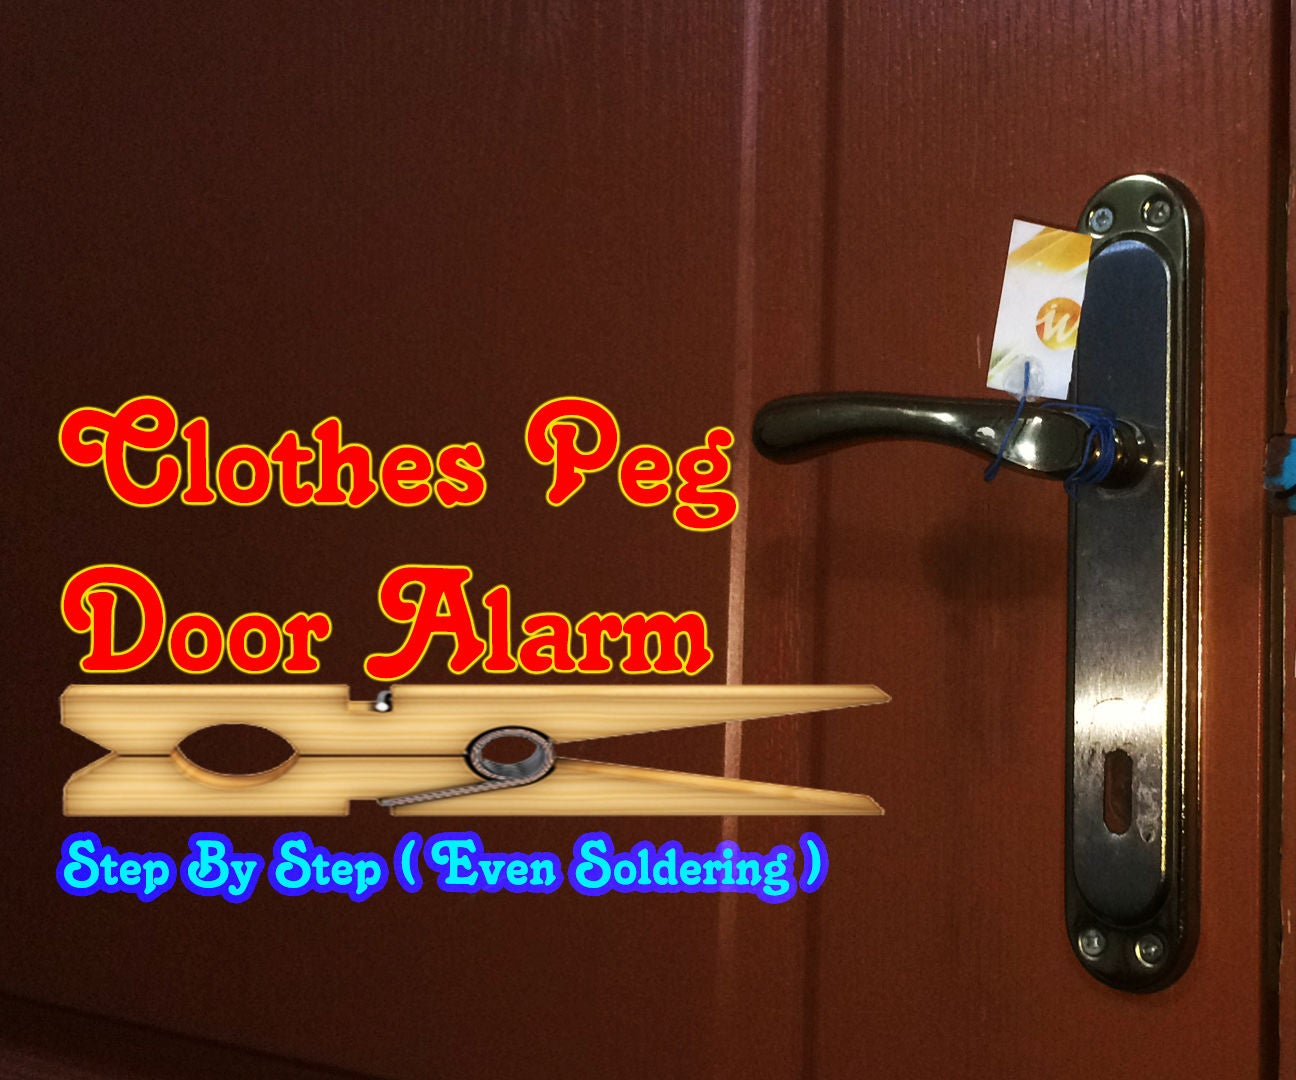 How To Make Simple Door Alarm By Using Clothes Peg Diy 4 Steps Circuit Diagram